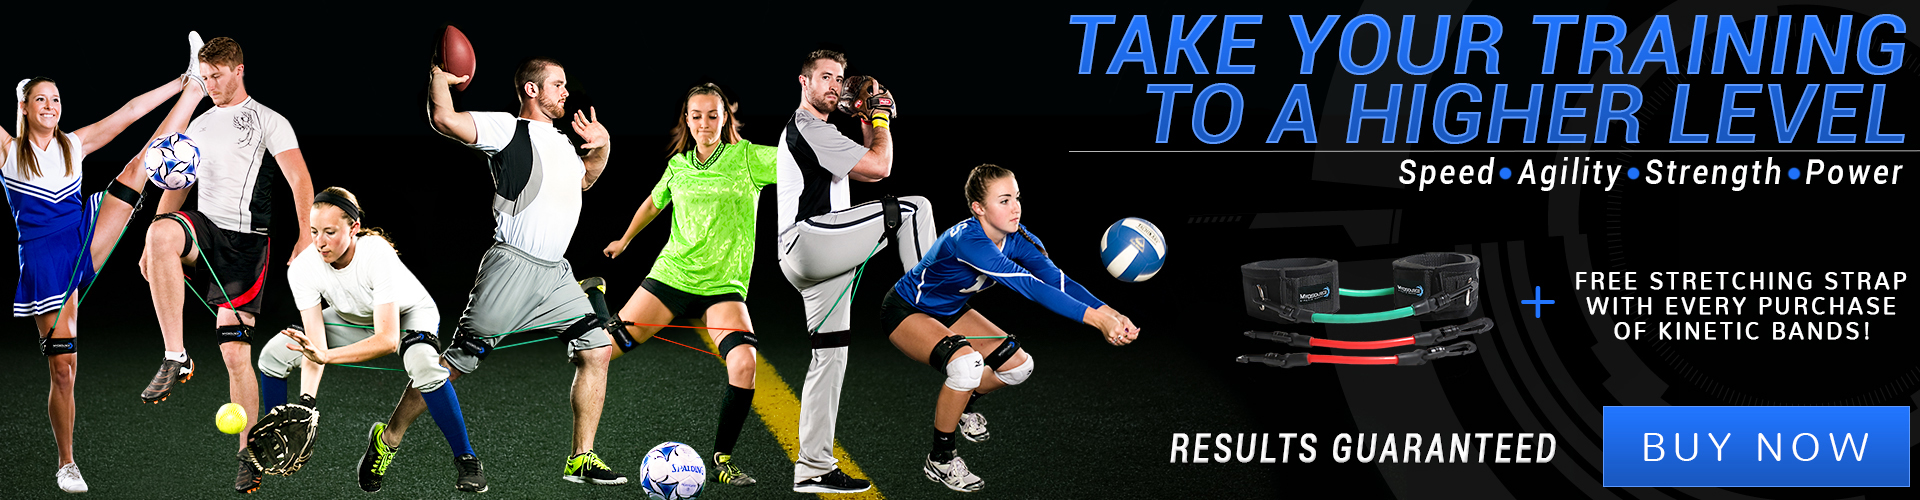 Take your training to a higher level; speed, agility, strength, power. Guaranteed results. Buy Kinetic Bands now.